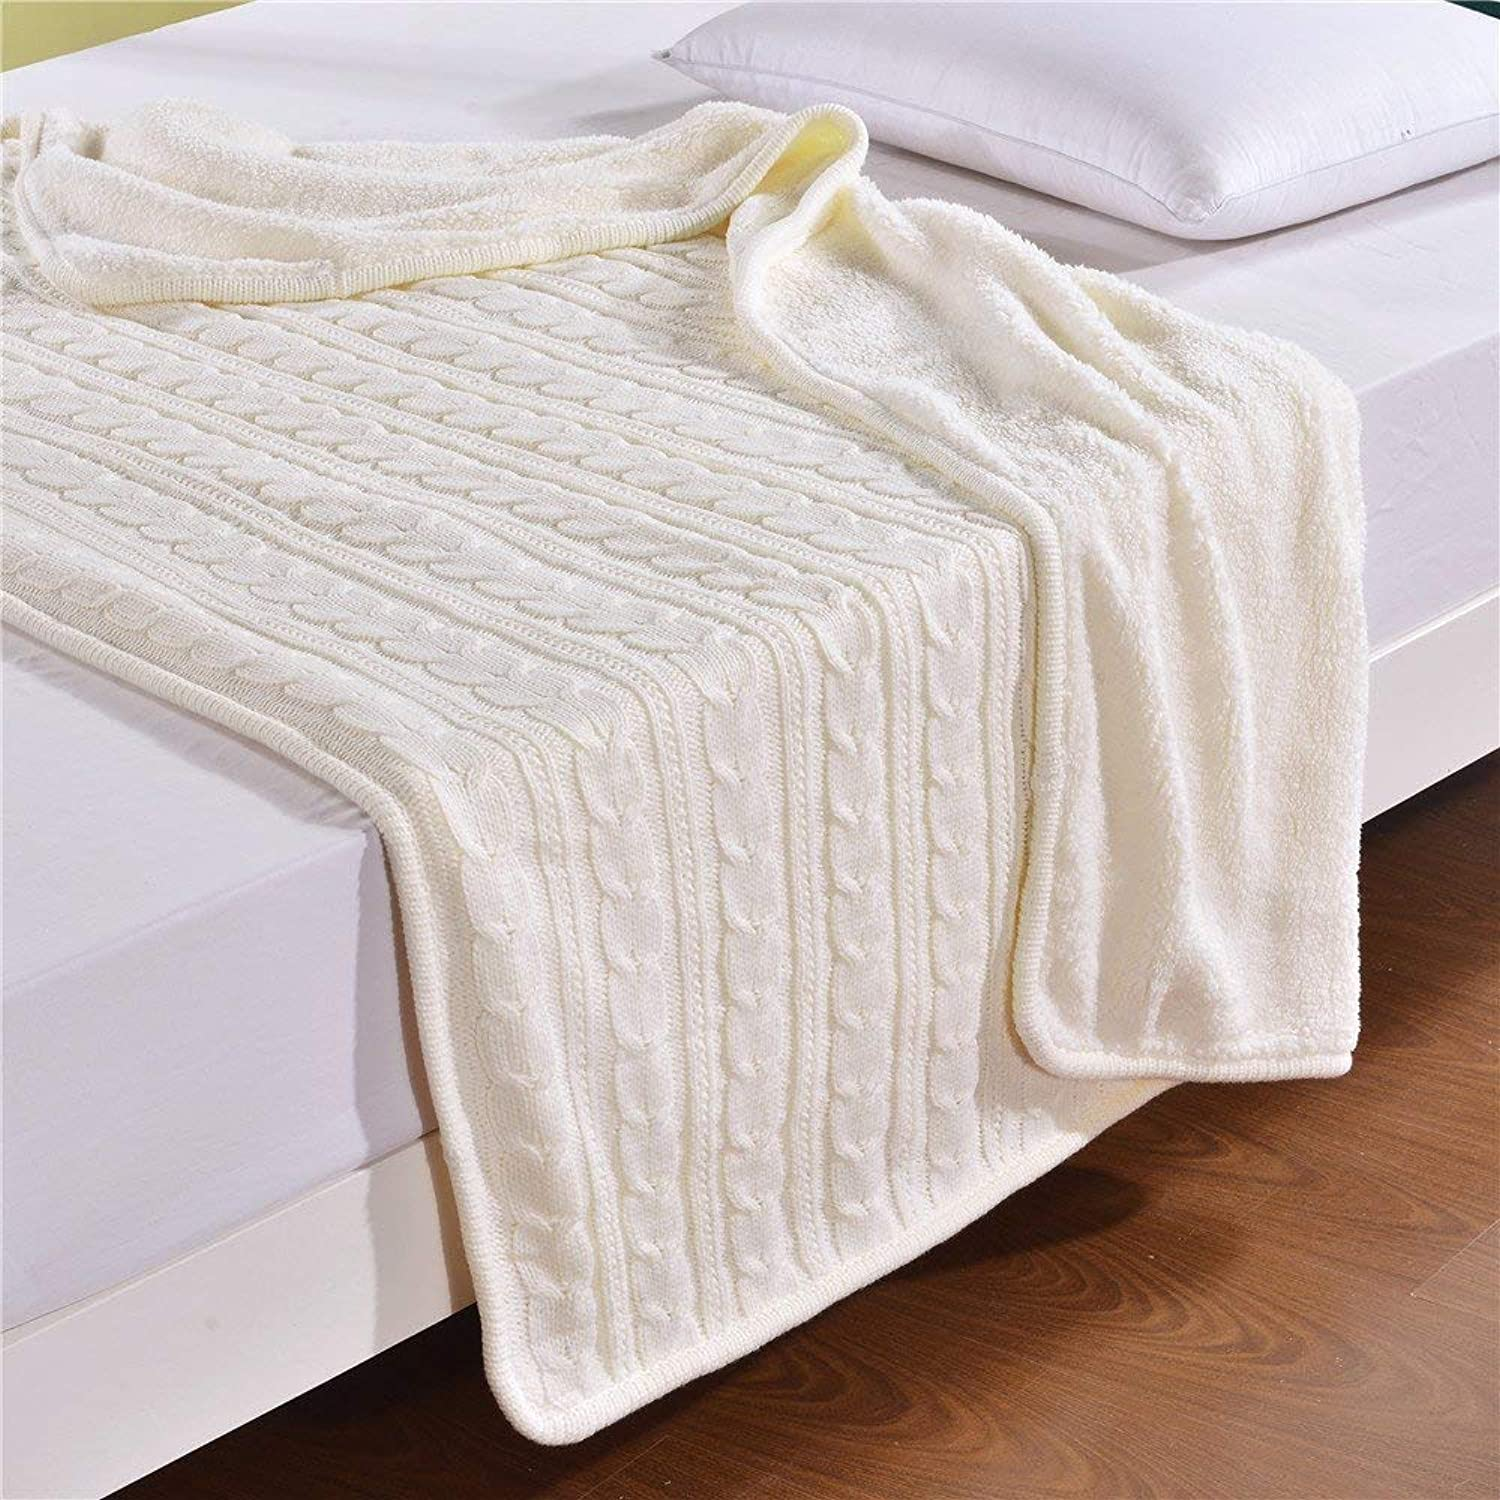 MisDress Cable Knit Sherpa Throw Blanket Thick and Reversible Fleece Sweater Blanket Super Soft Cozy Sofa\Couch\Air Conditioning Blankets White 59 x79